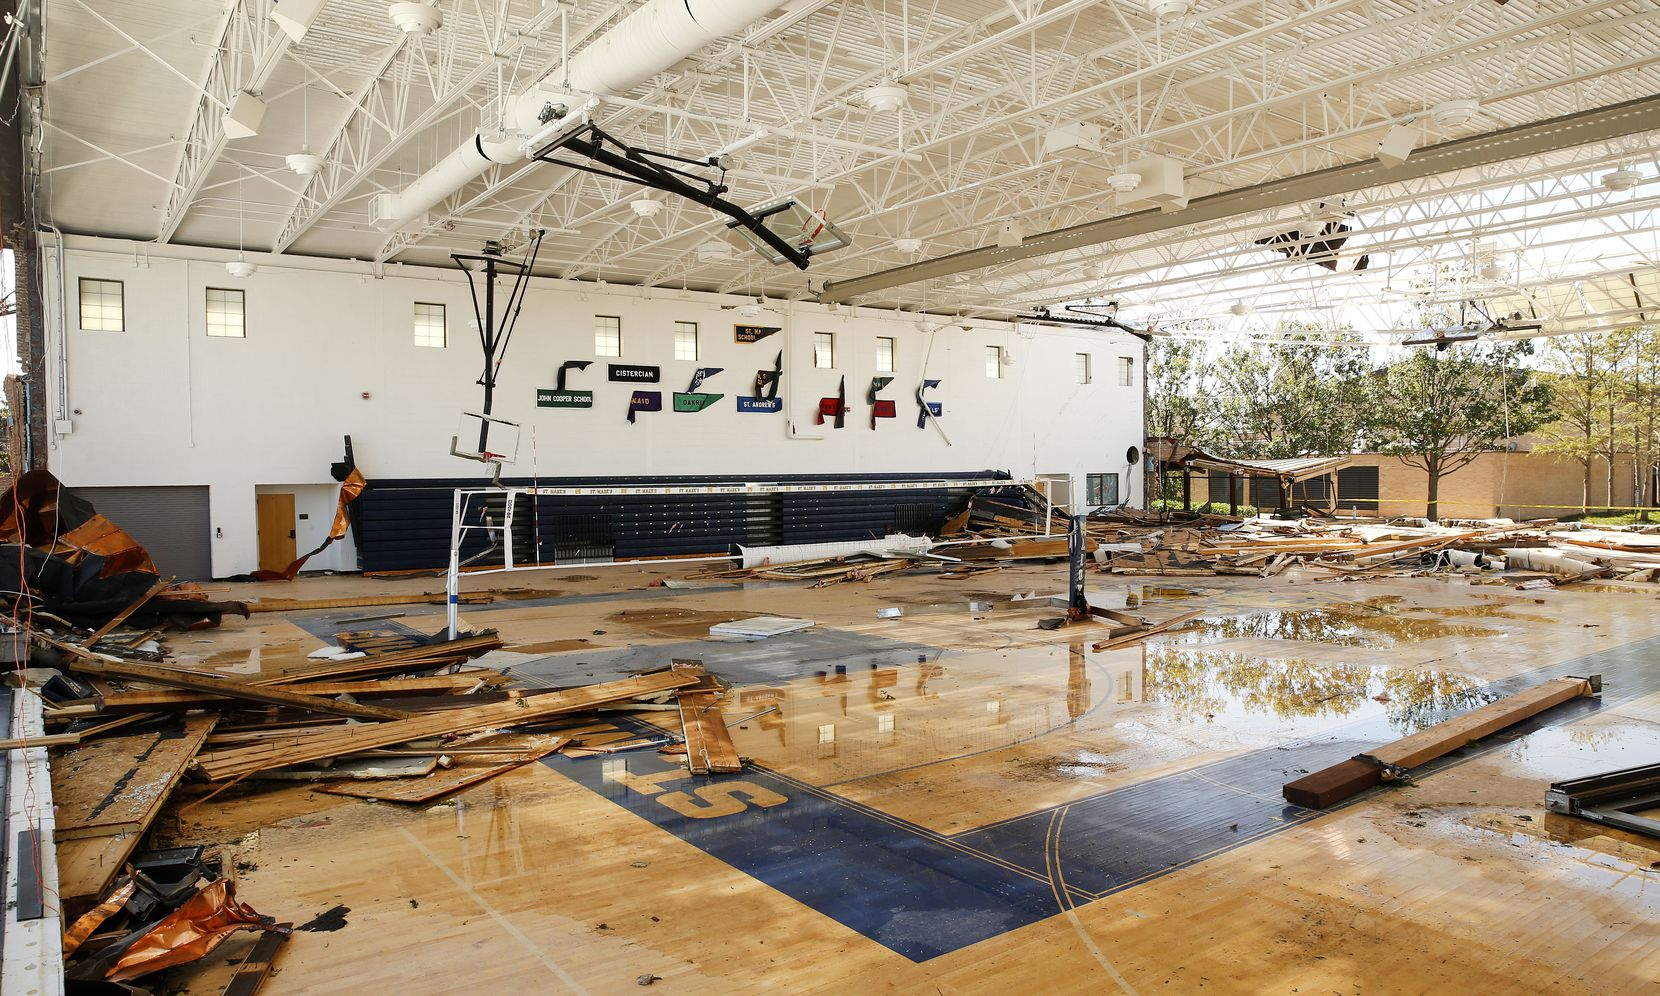 The gymnasium walls at St. Mark's School of Texas were blown over during the tornado in Dallas, Monday, October 21, 2019. A tornado tore through the entire neighborhood knocking down trees and ripping roofs from homes. (Tom Fox/The Dallas Morning News)